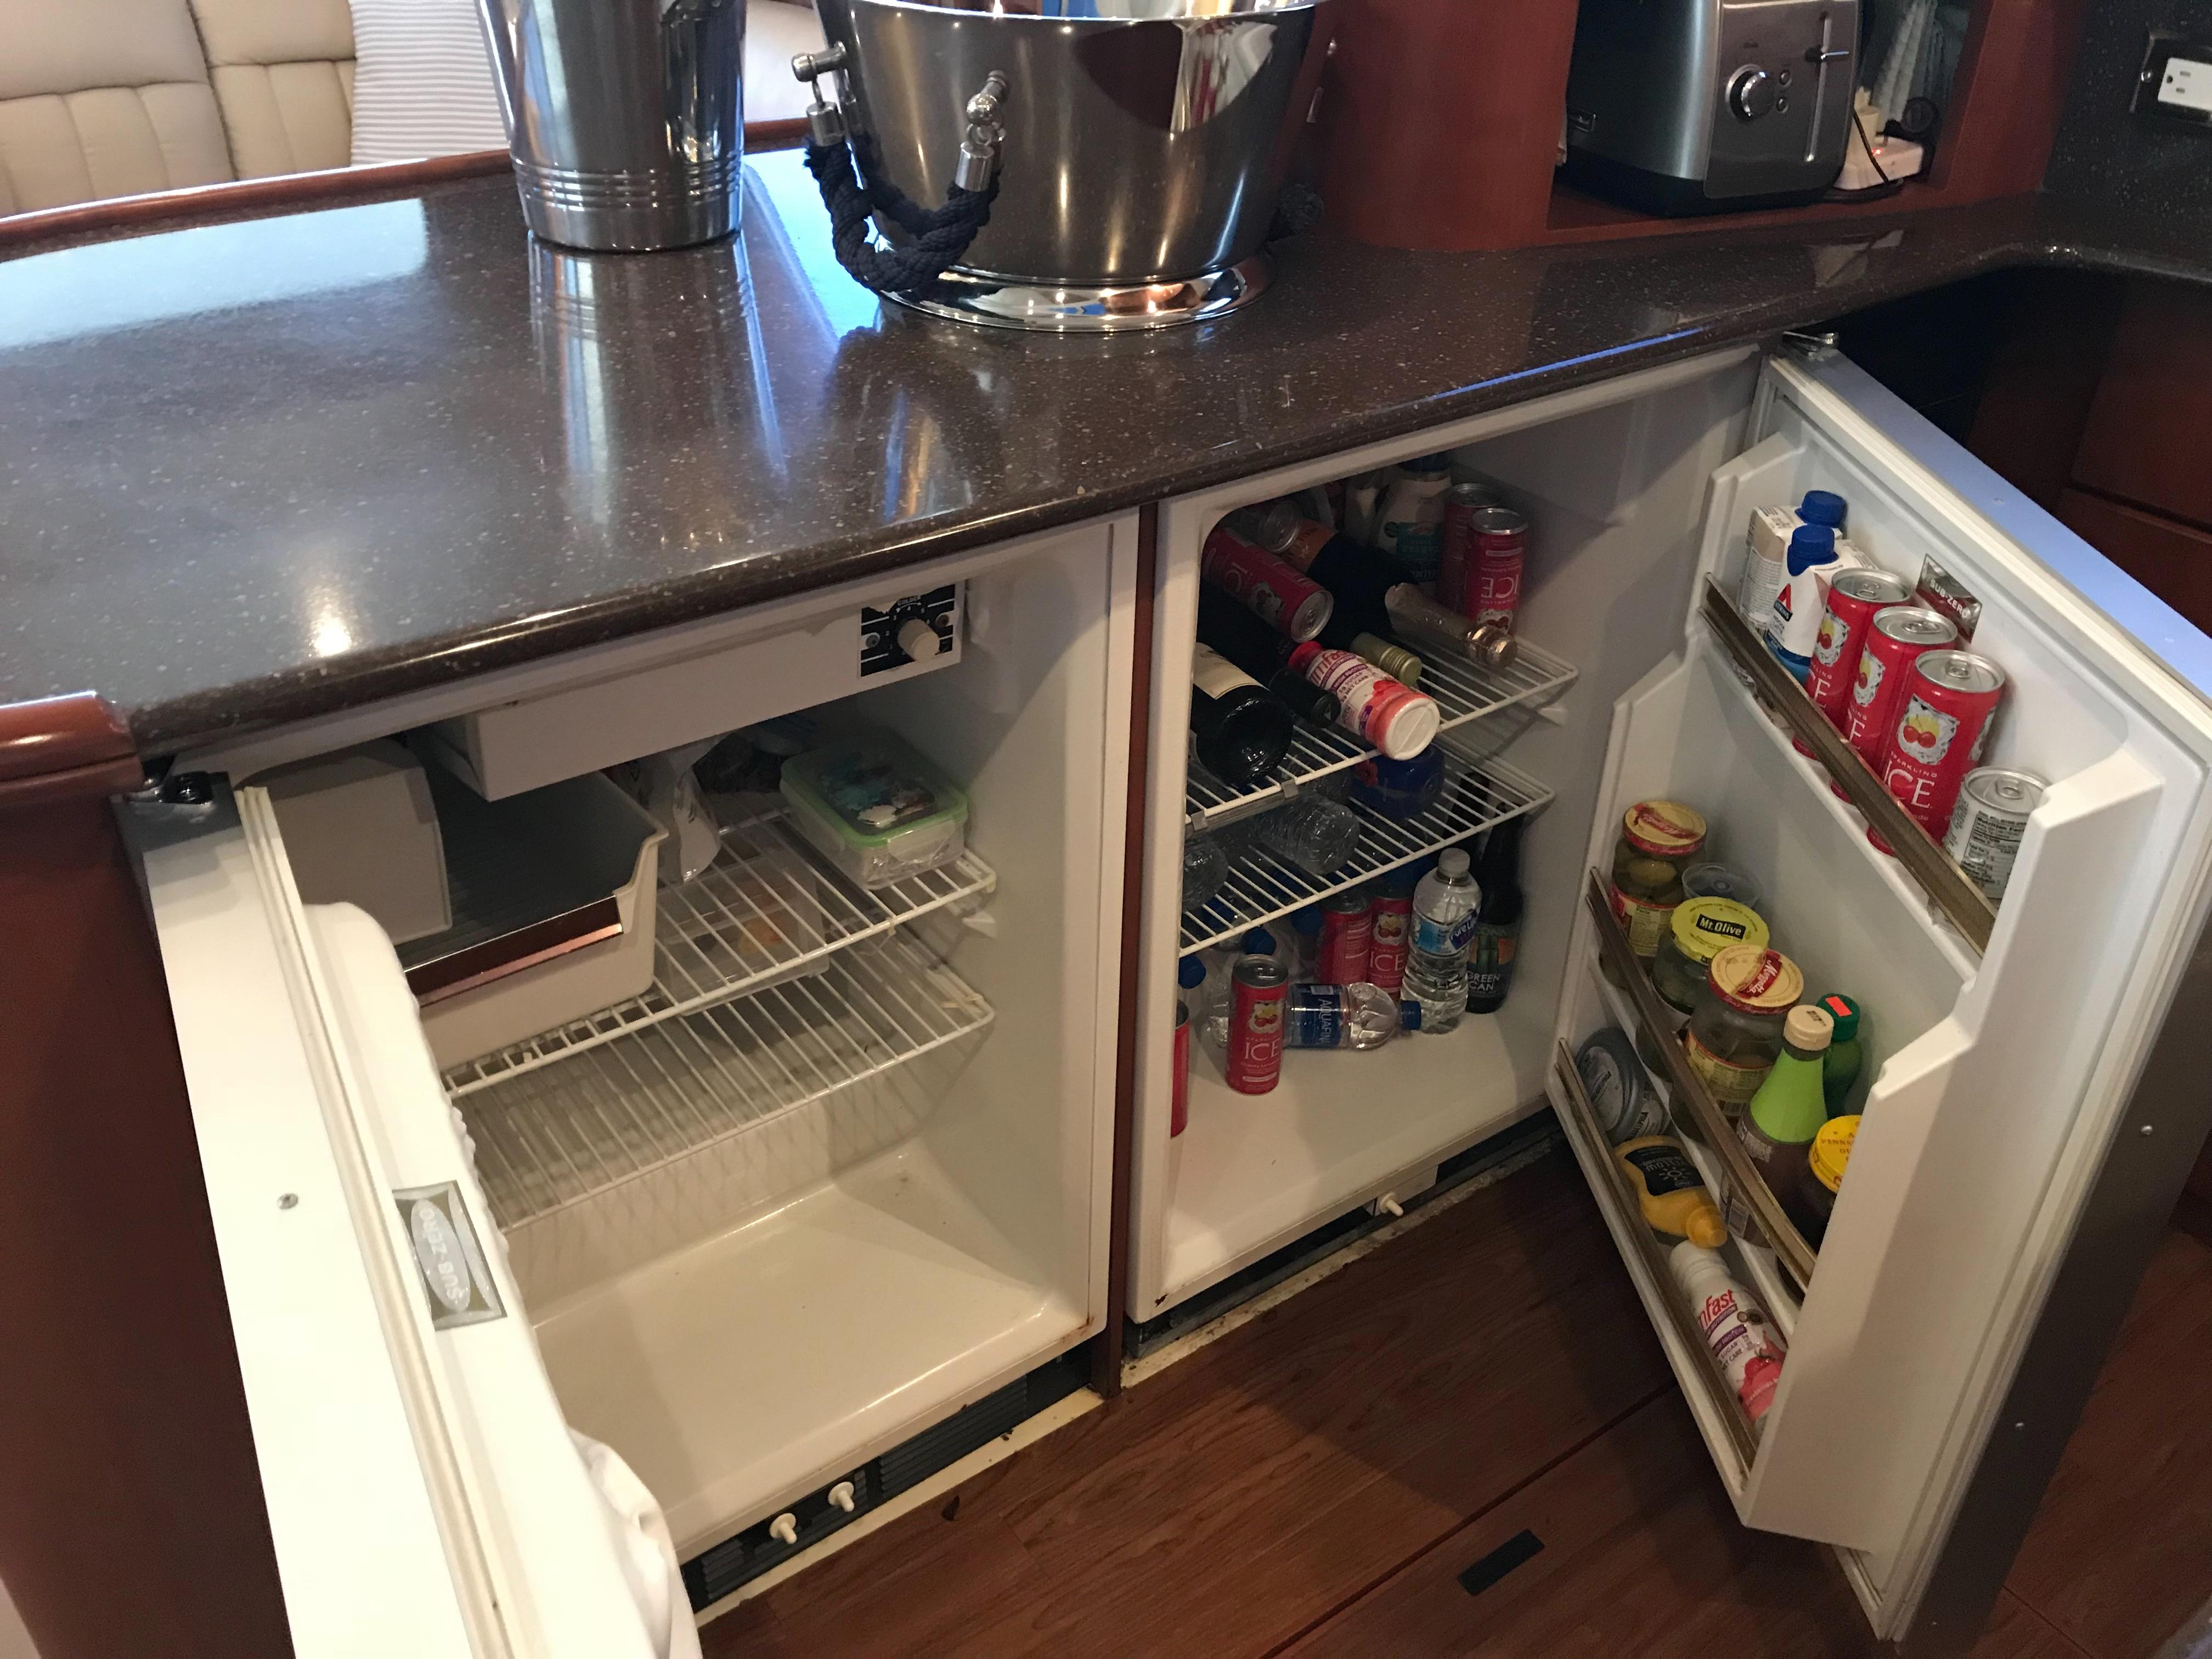 Silverton 48 Convertible - Subzero Refrigerator and Freezer